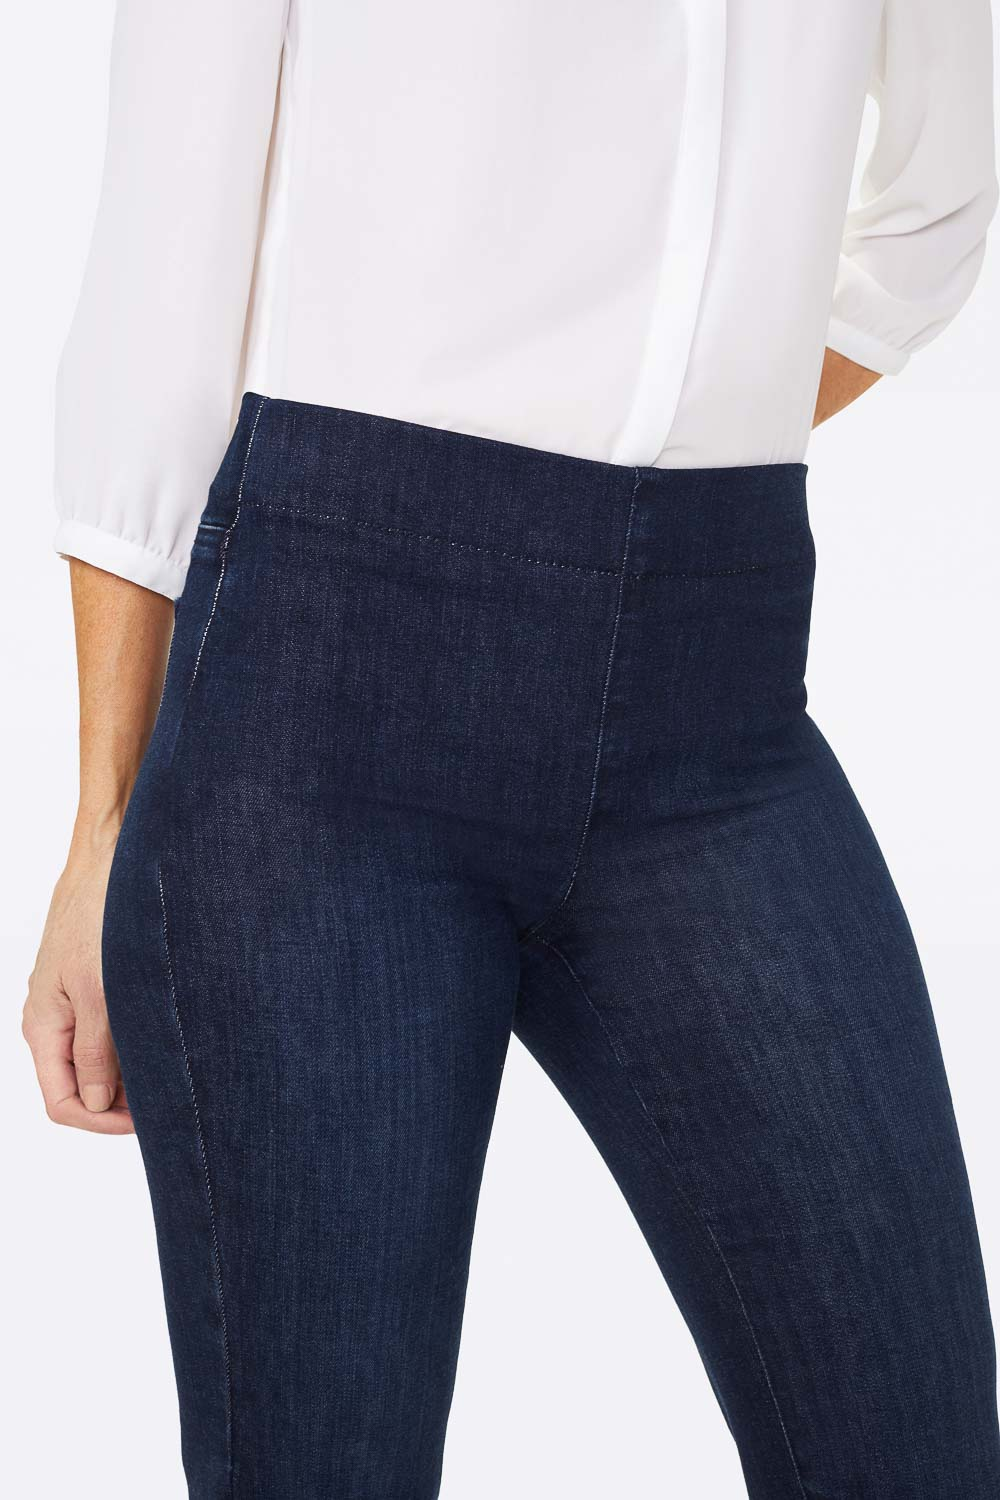 Marilyn Straight Pull-On Jeans In Petite - CLEAN DENSLOWE